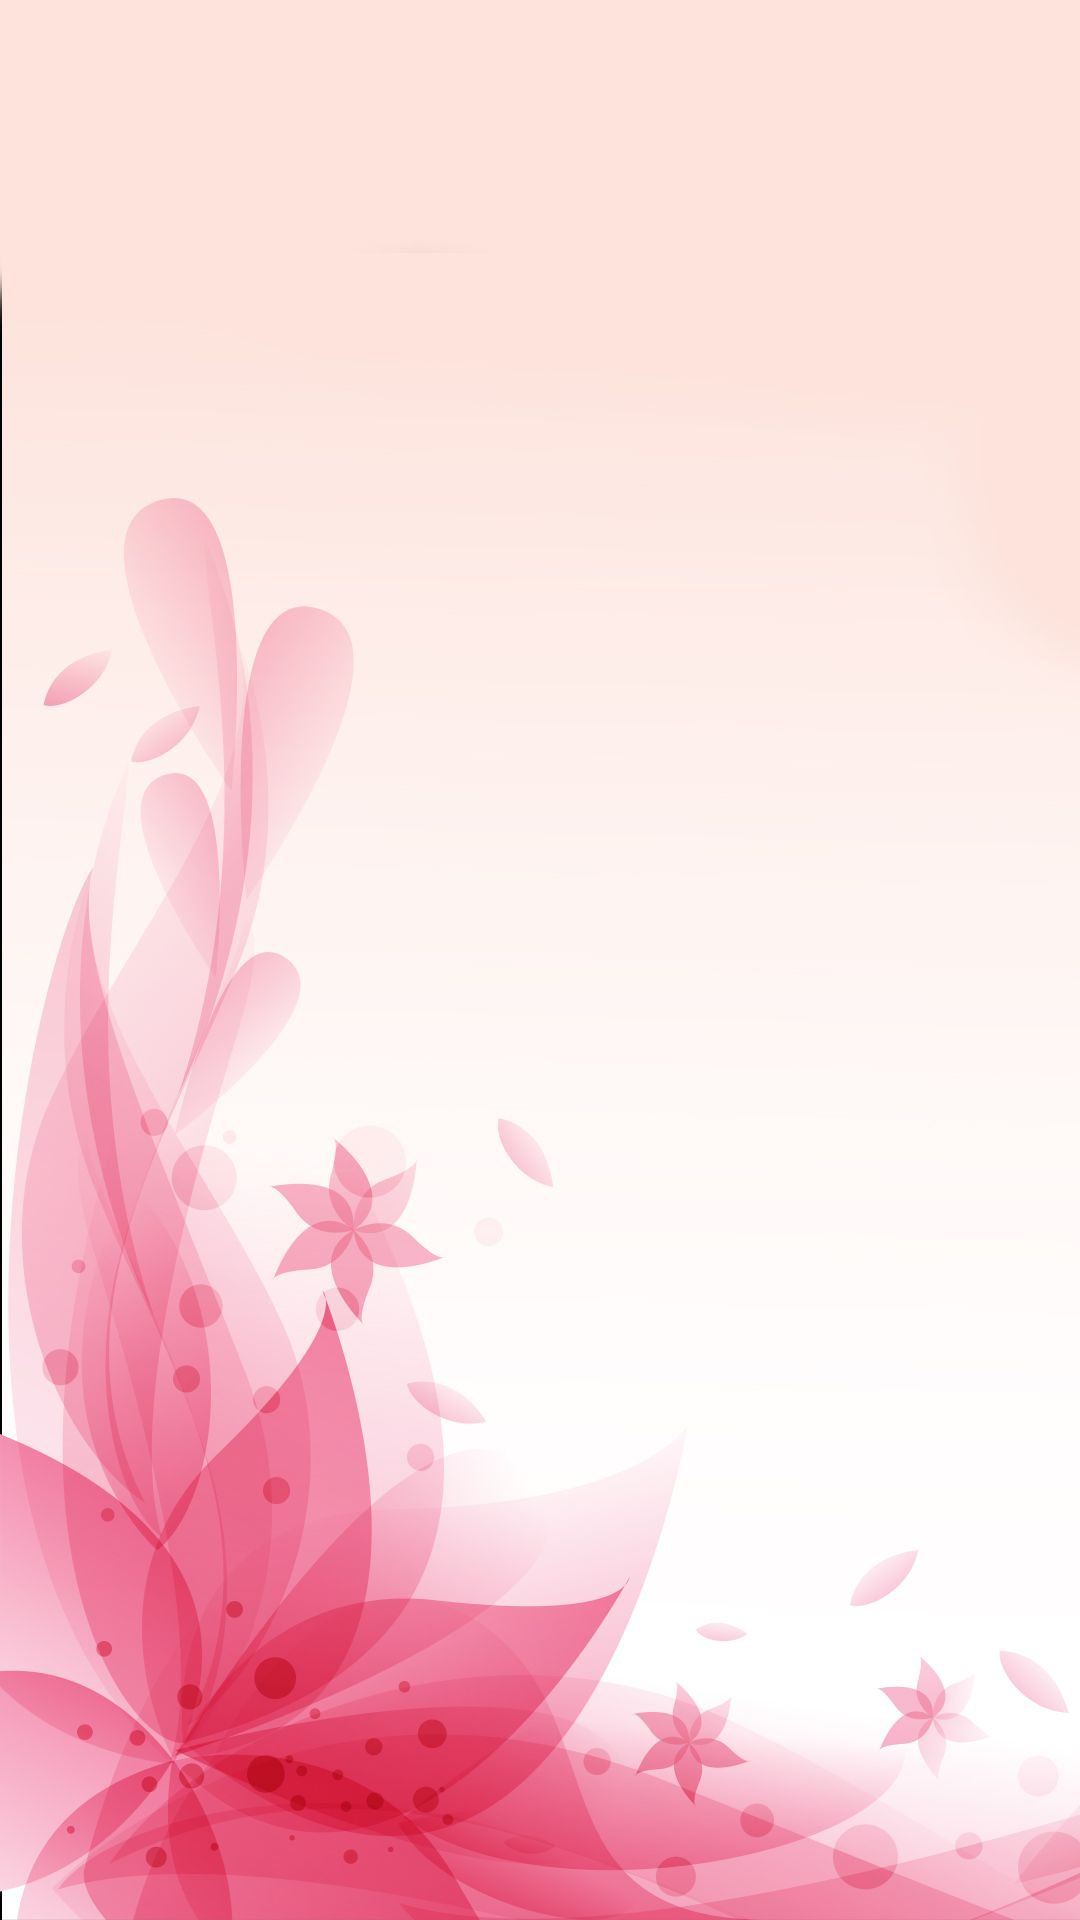 Pretty flowers on pink background | Pastel flowers, Pretty ...